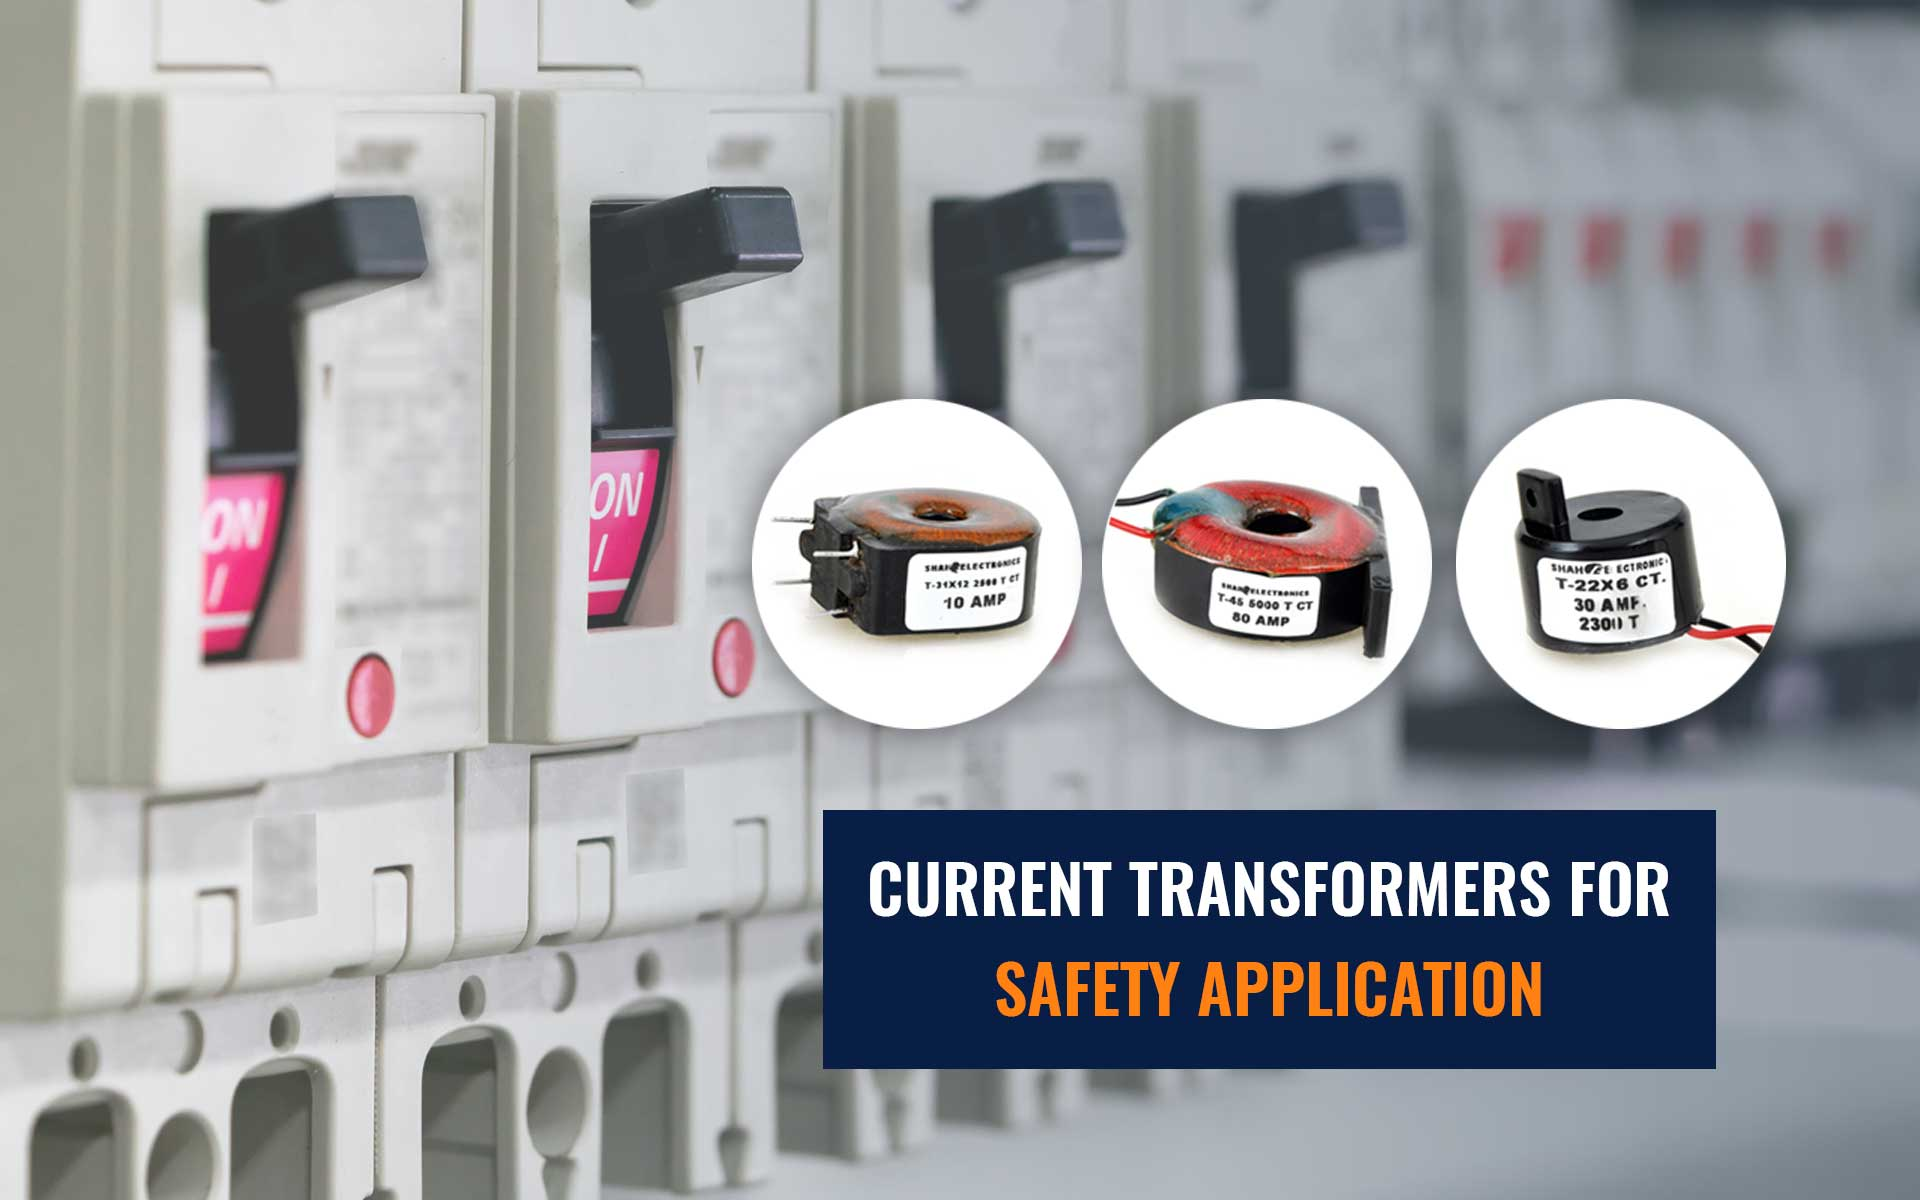 Current Transformers for Safety Application